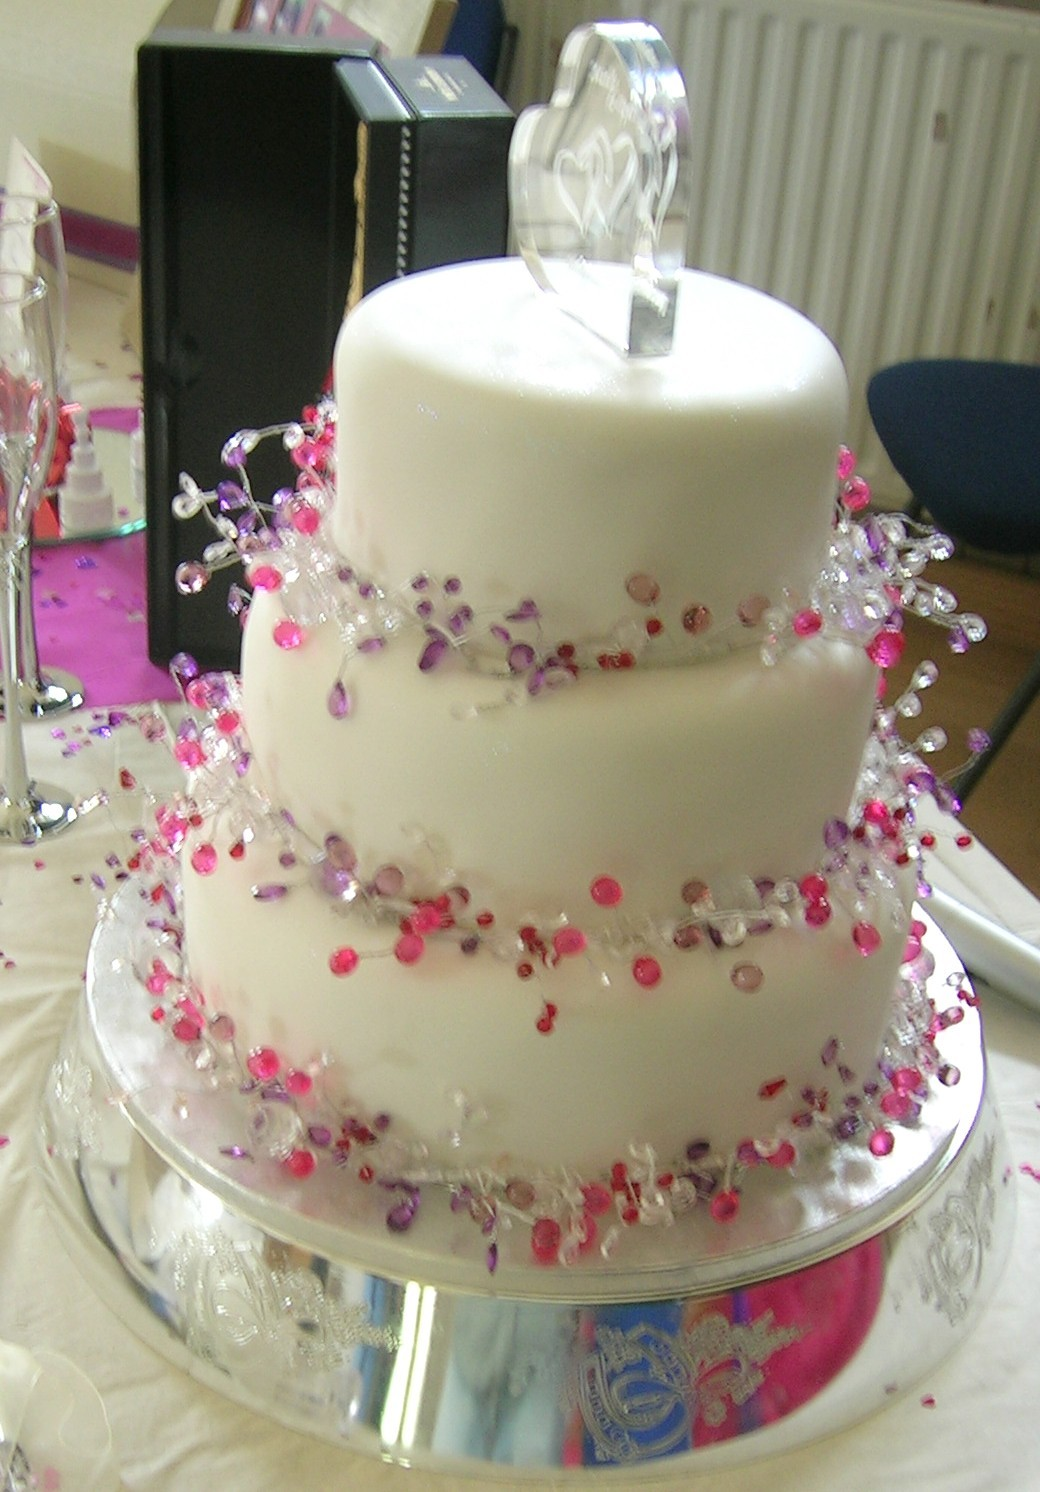 Wedding Cake Design Tips : Wedding Pictures Wedding Photos: Wedding Cake Decorating ...